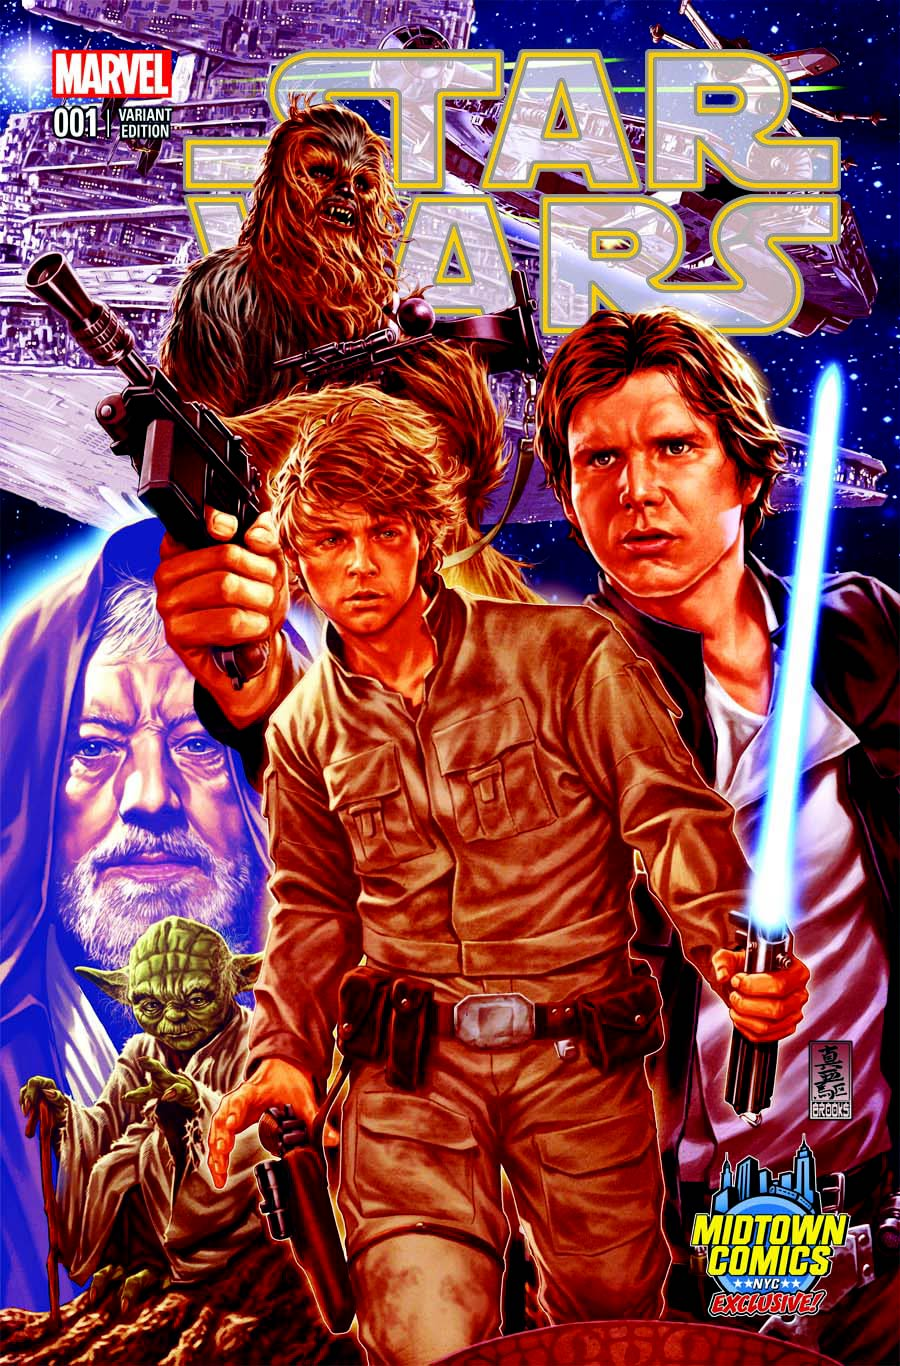 Star Wars Vol 4 #1 Cover B Midtown Exclusive Mark Brooks Connecting Color Variant Cover (Part 1 of 3)